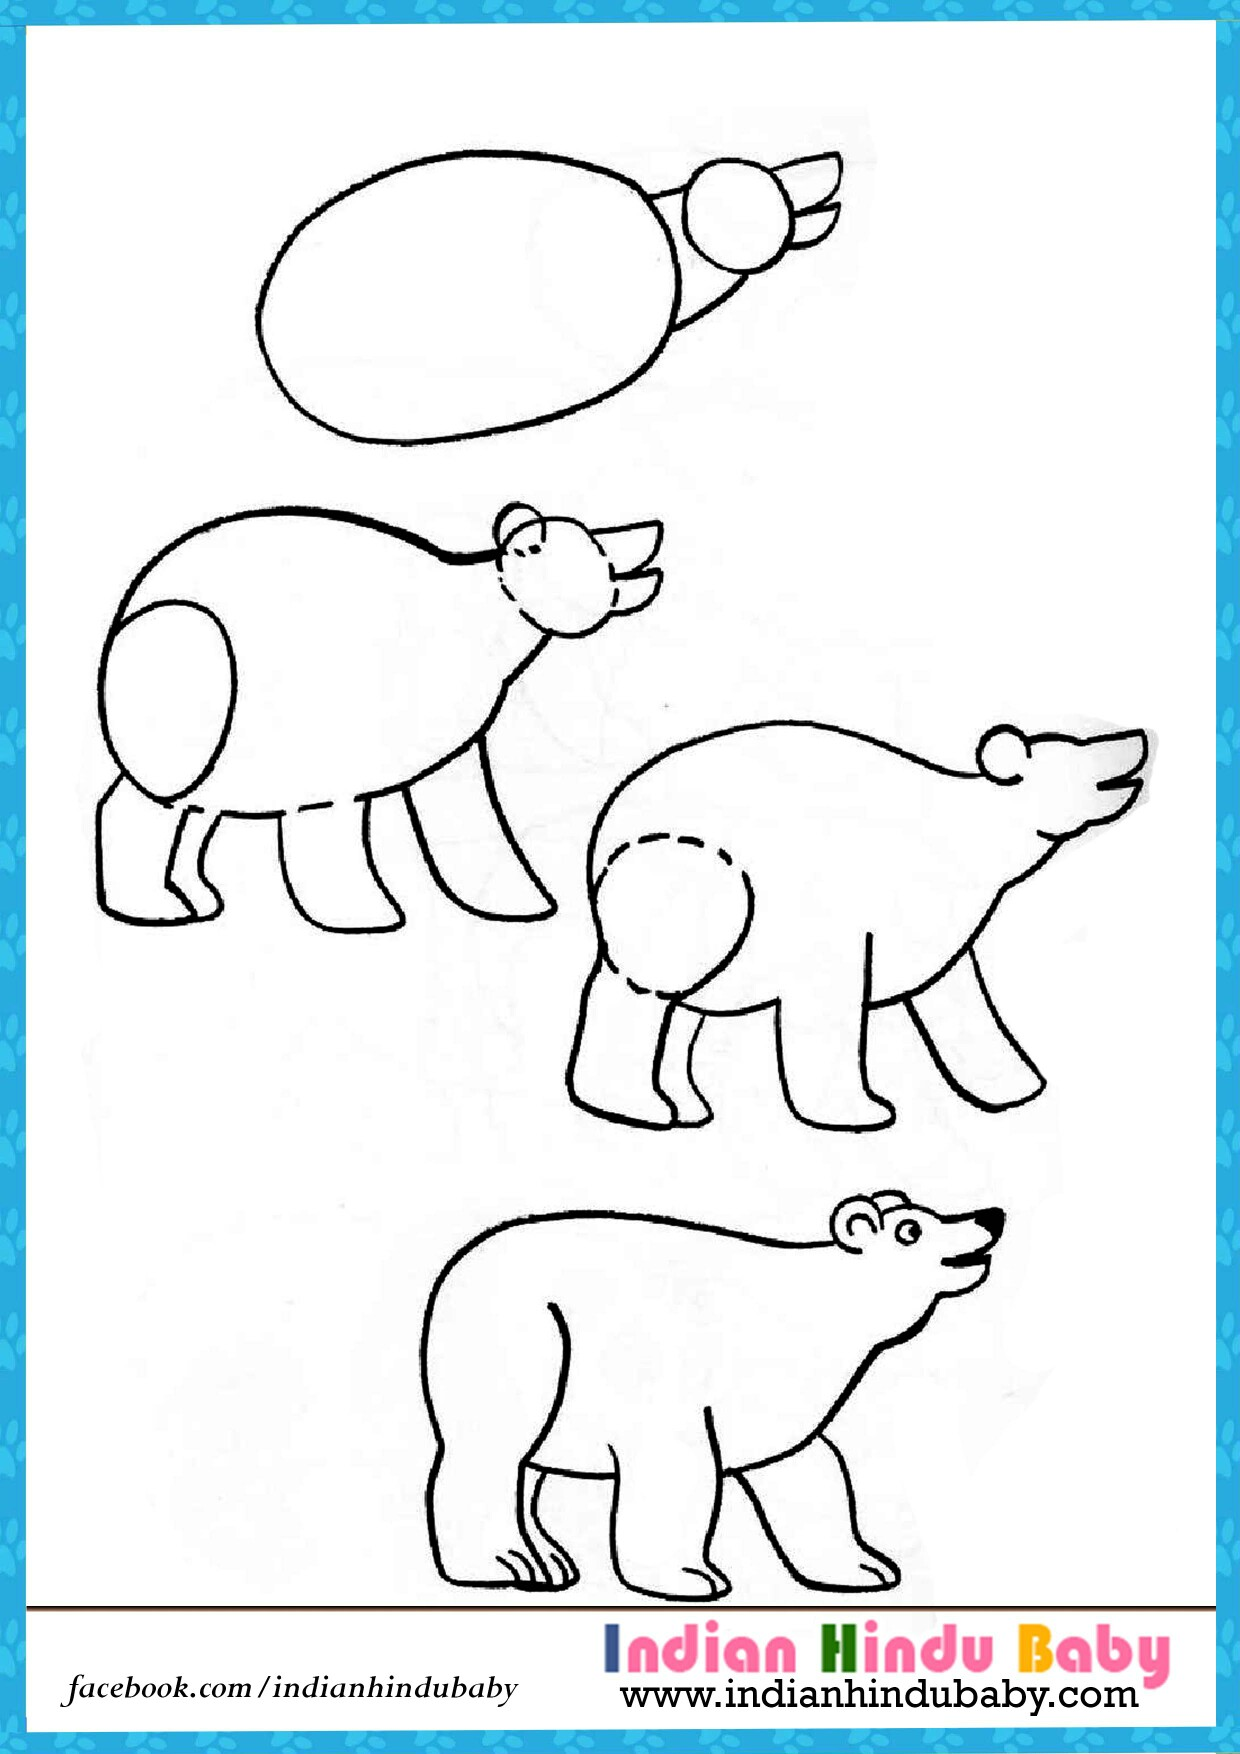 Simple Drawing For Kids at GetDrawings.com | Free for personal use ...